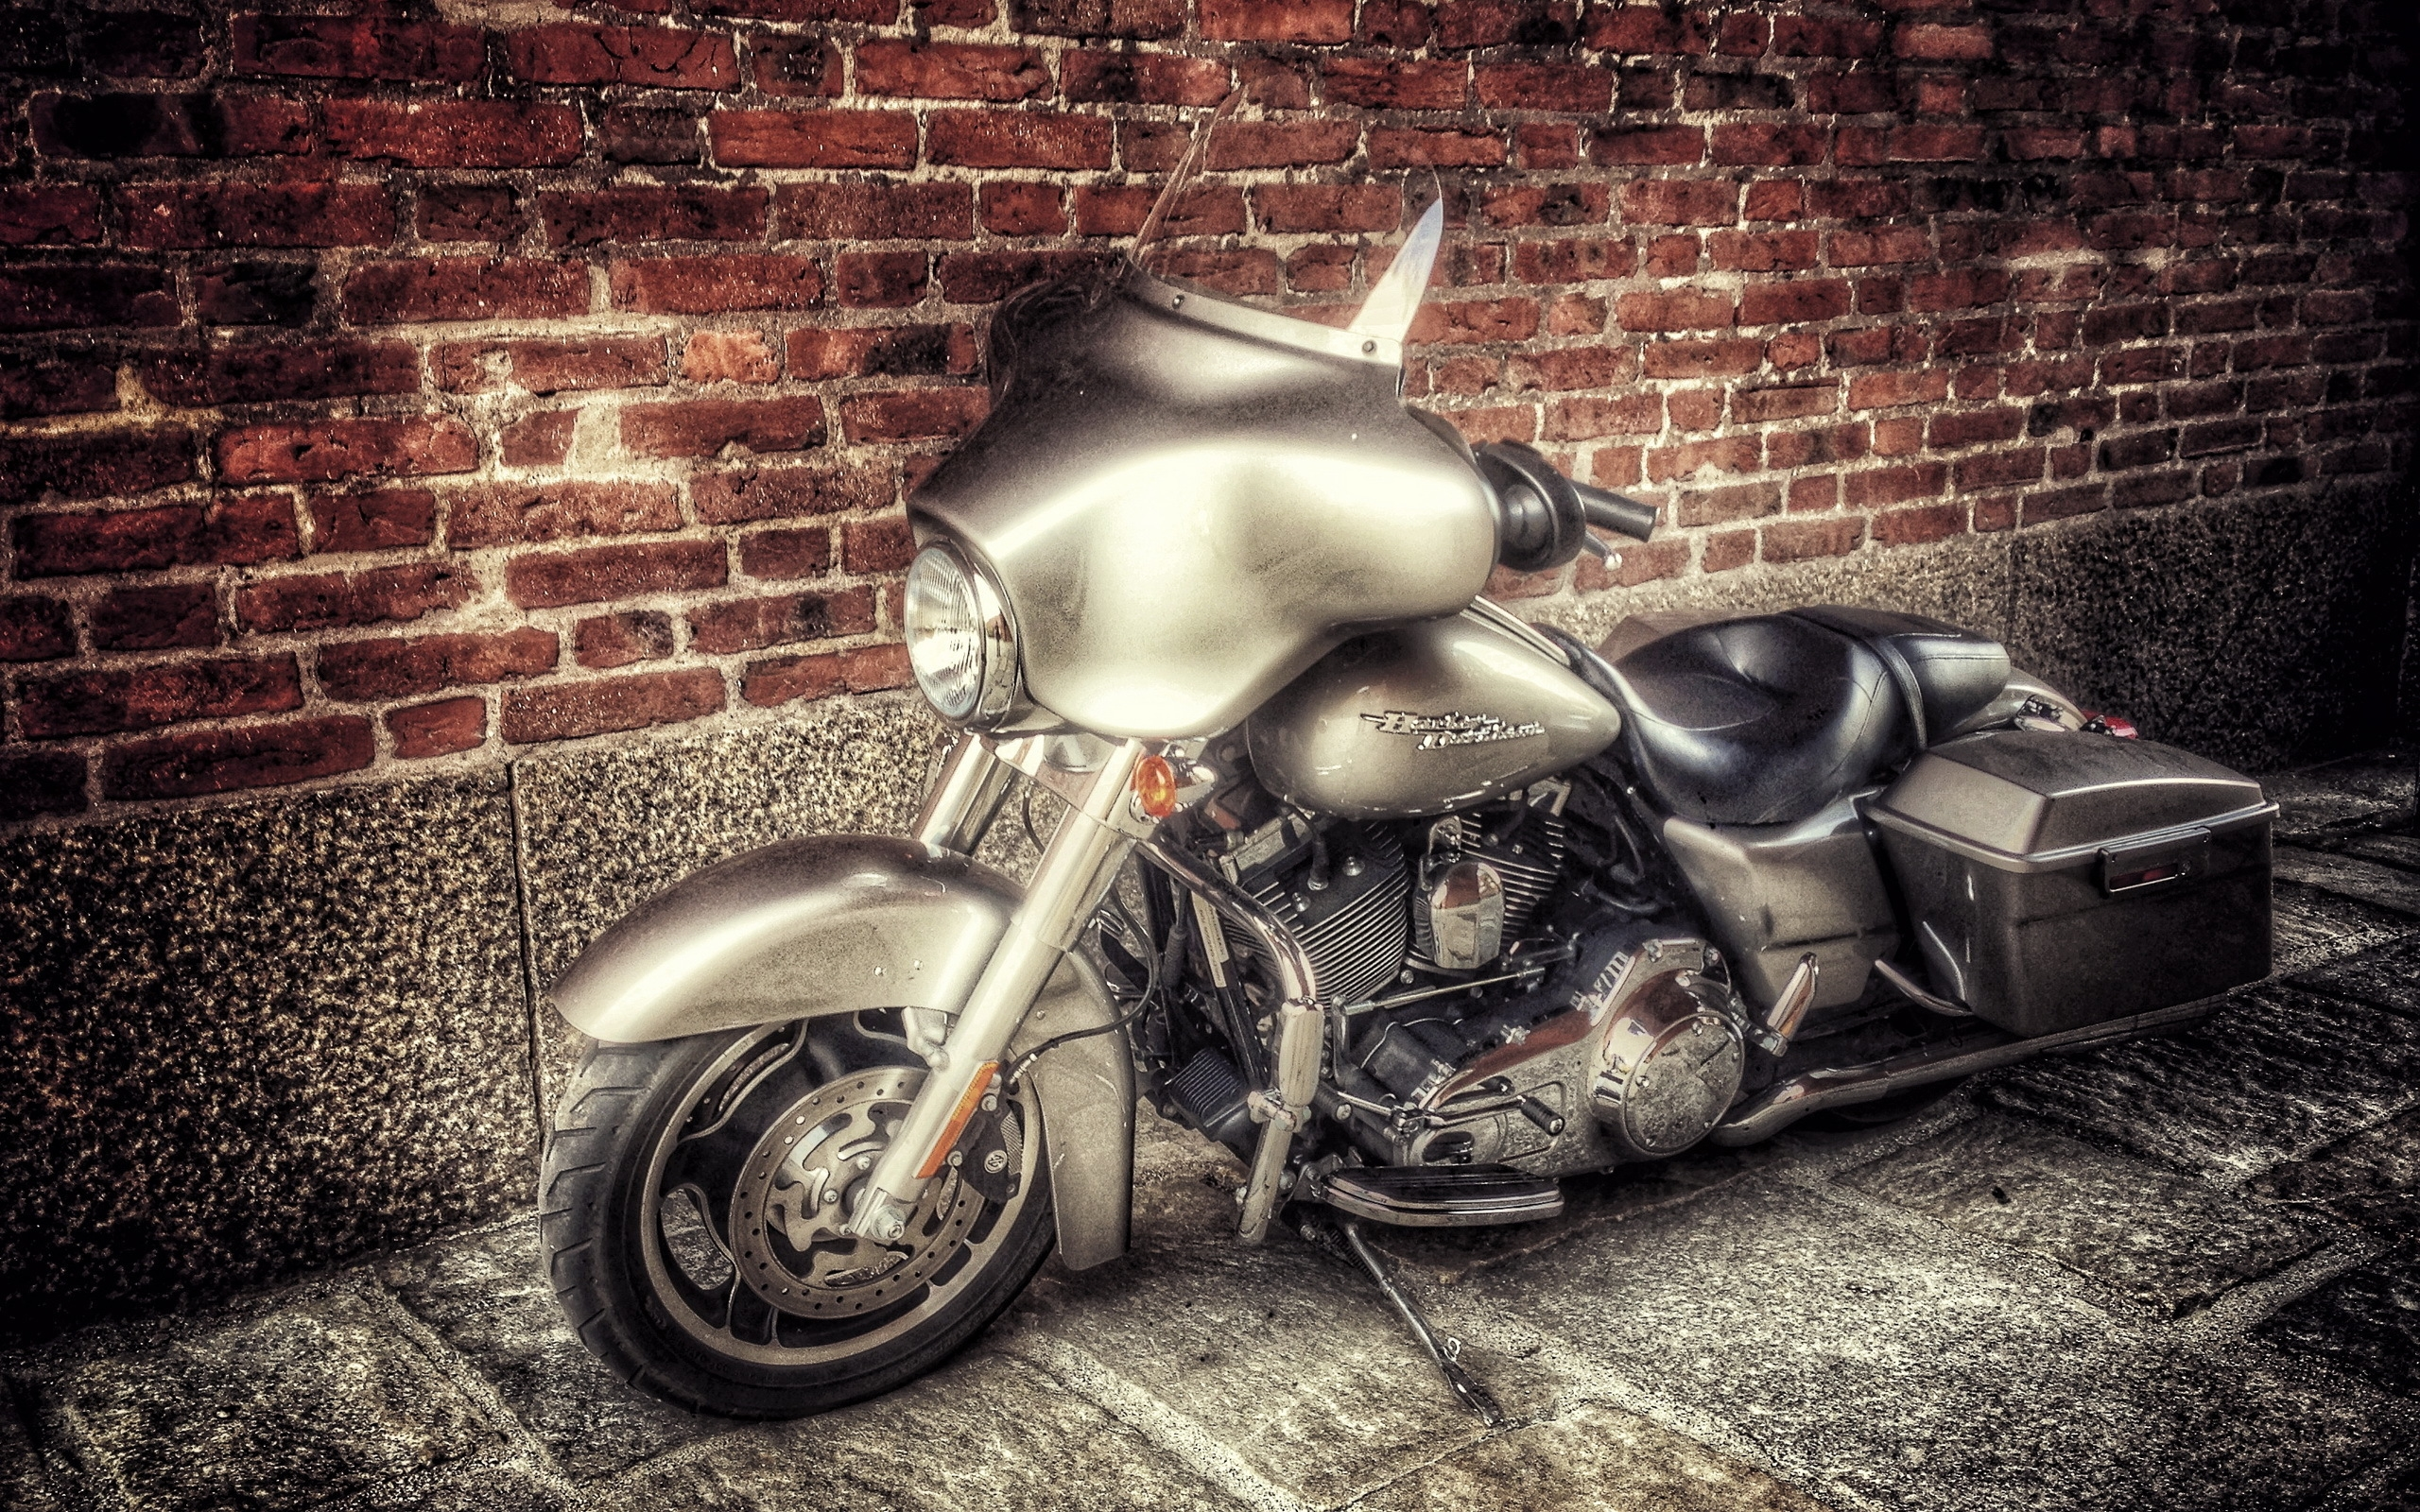 Stunning Old Harley Davidson for 2560 x 1600 widescreen resolution